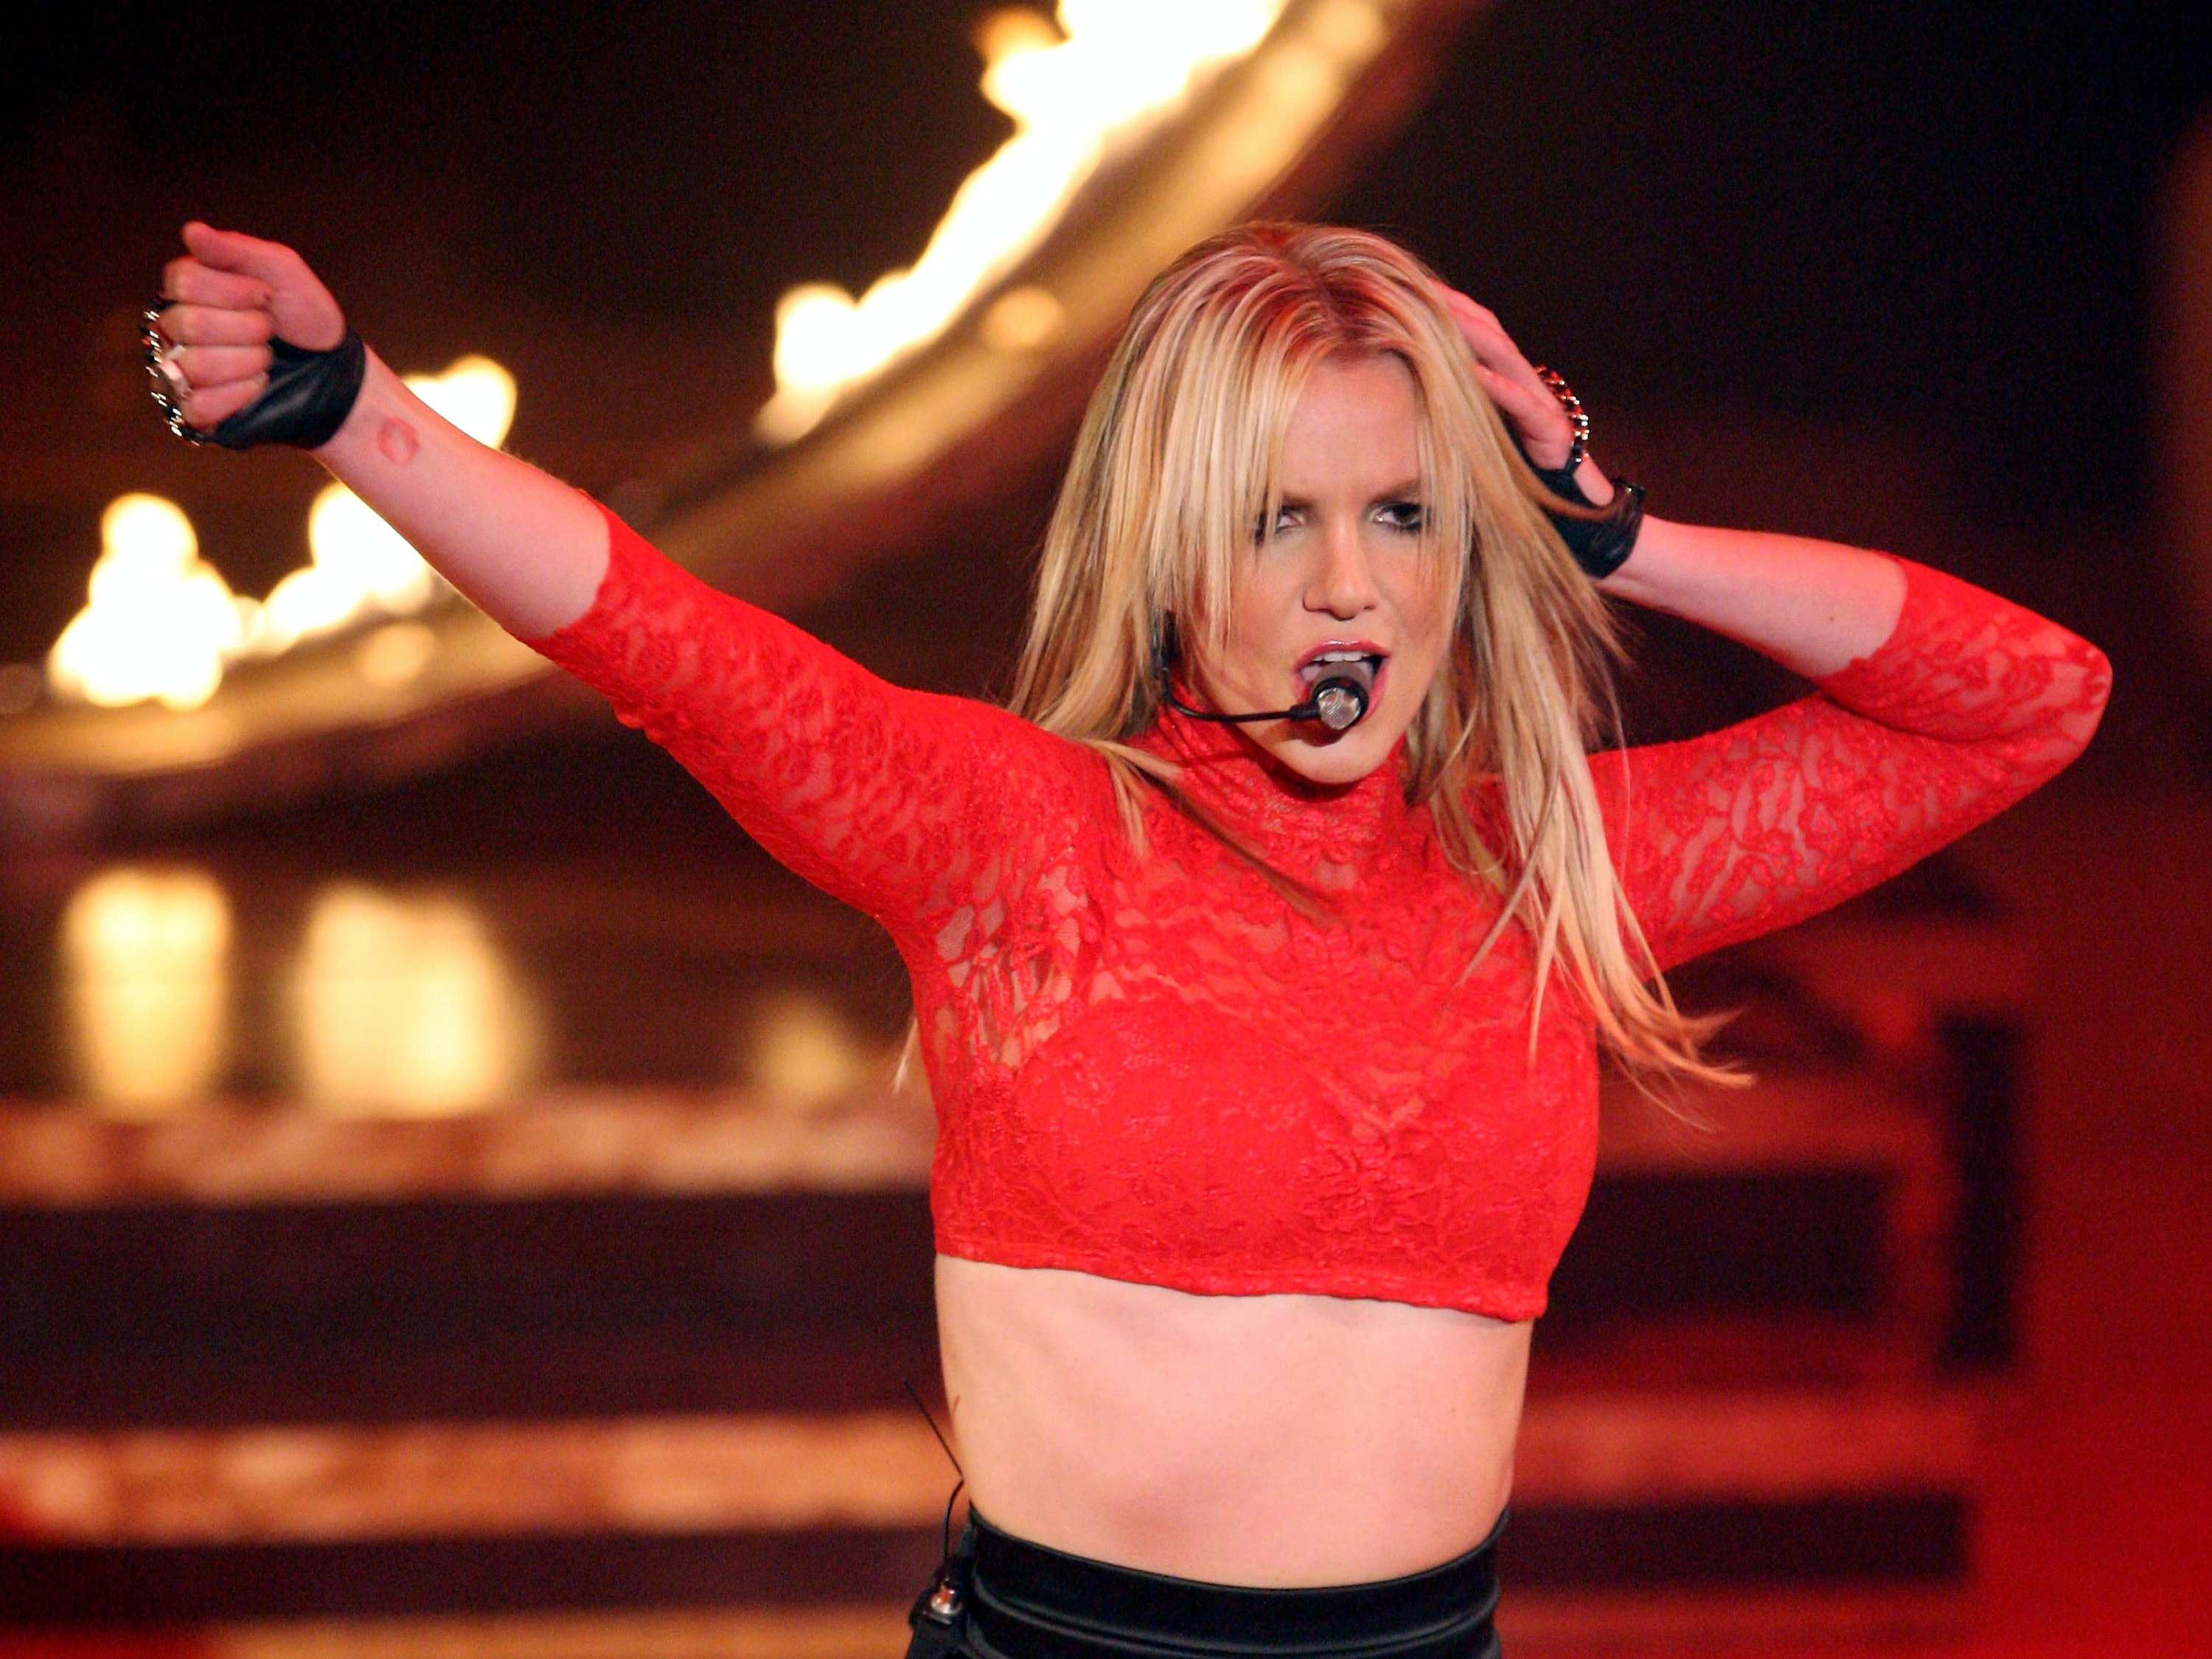 unique britney spears costumes that will immediately transport you back to 2004 this halloween - Britney Spears Red Jumpsuit Halloween Costume